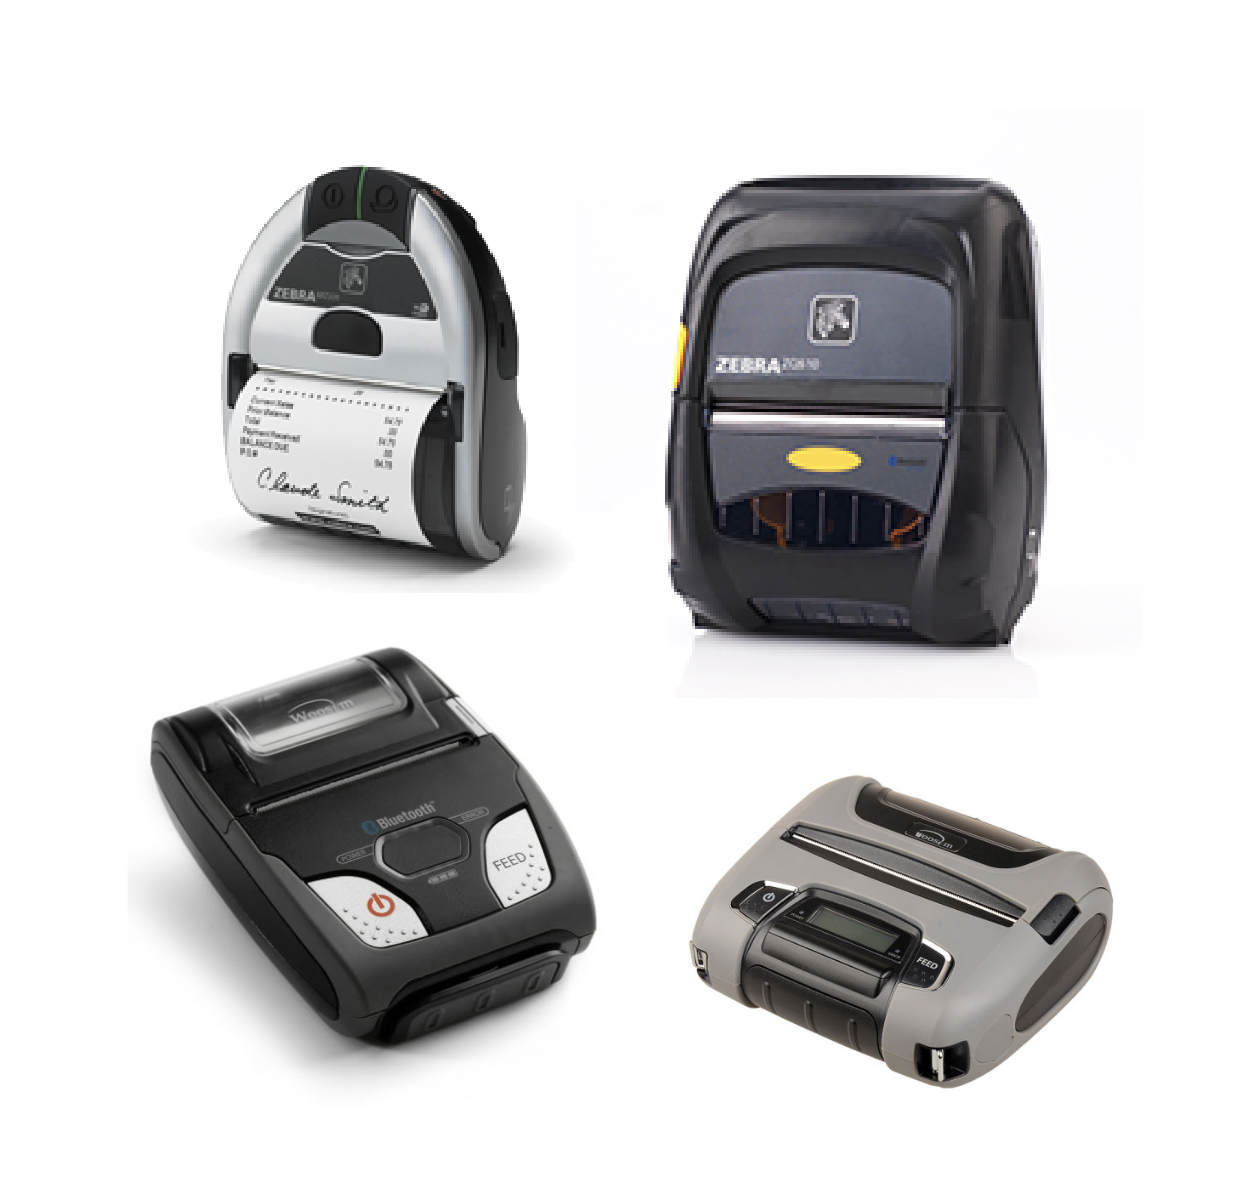 scanners and printers